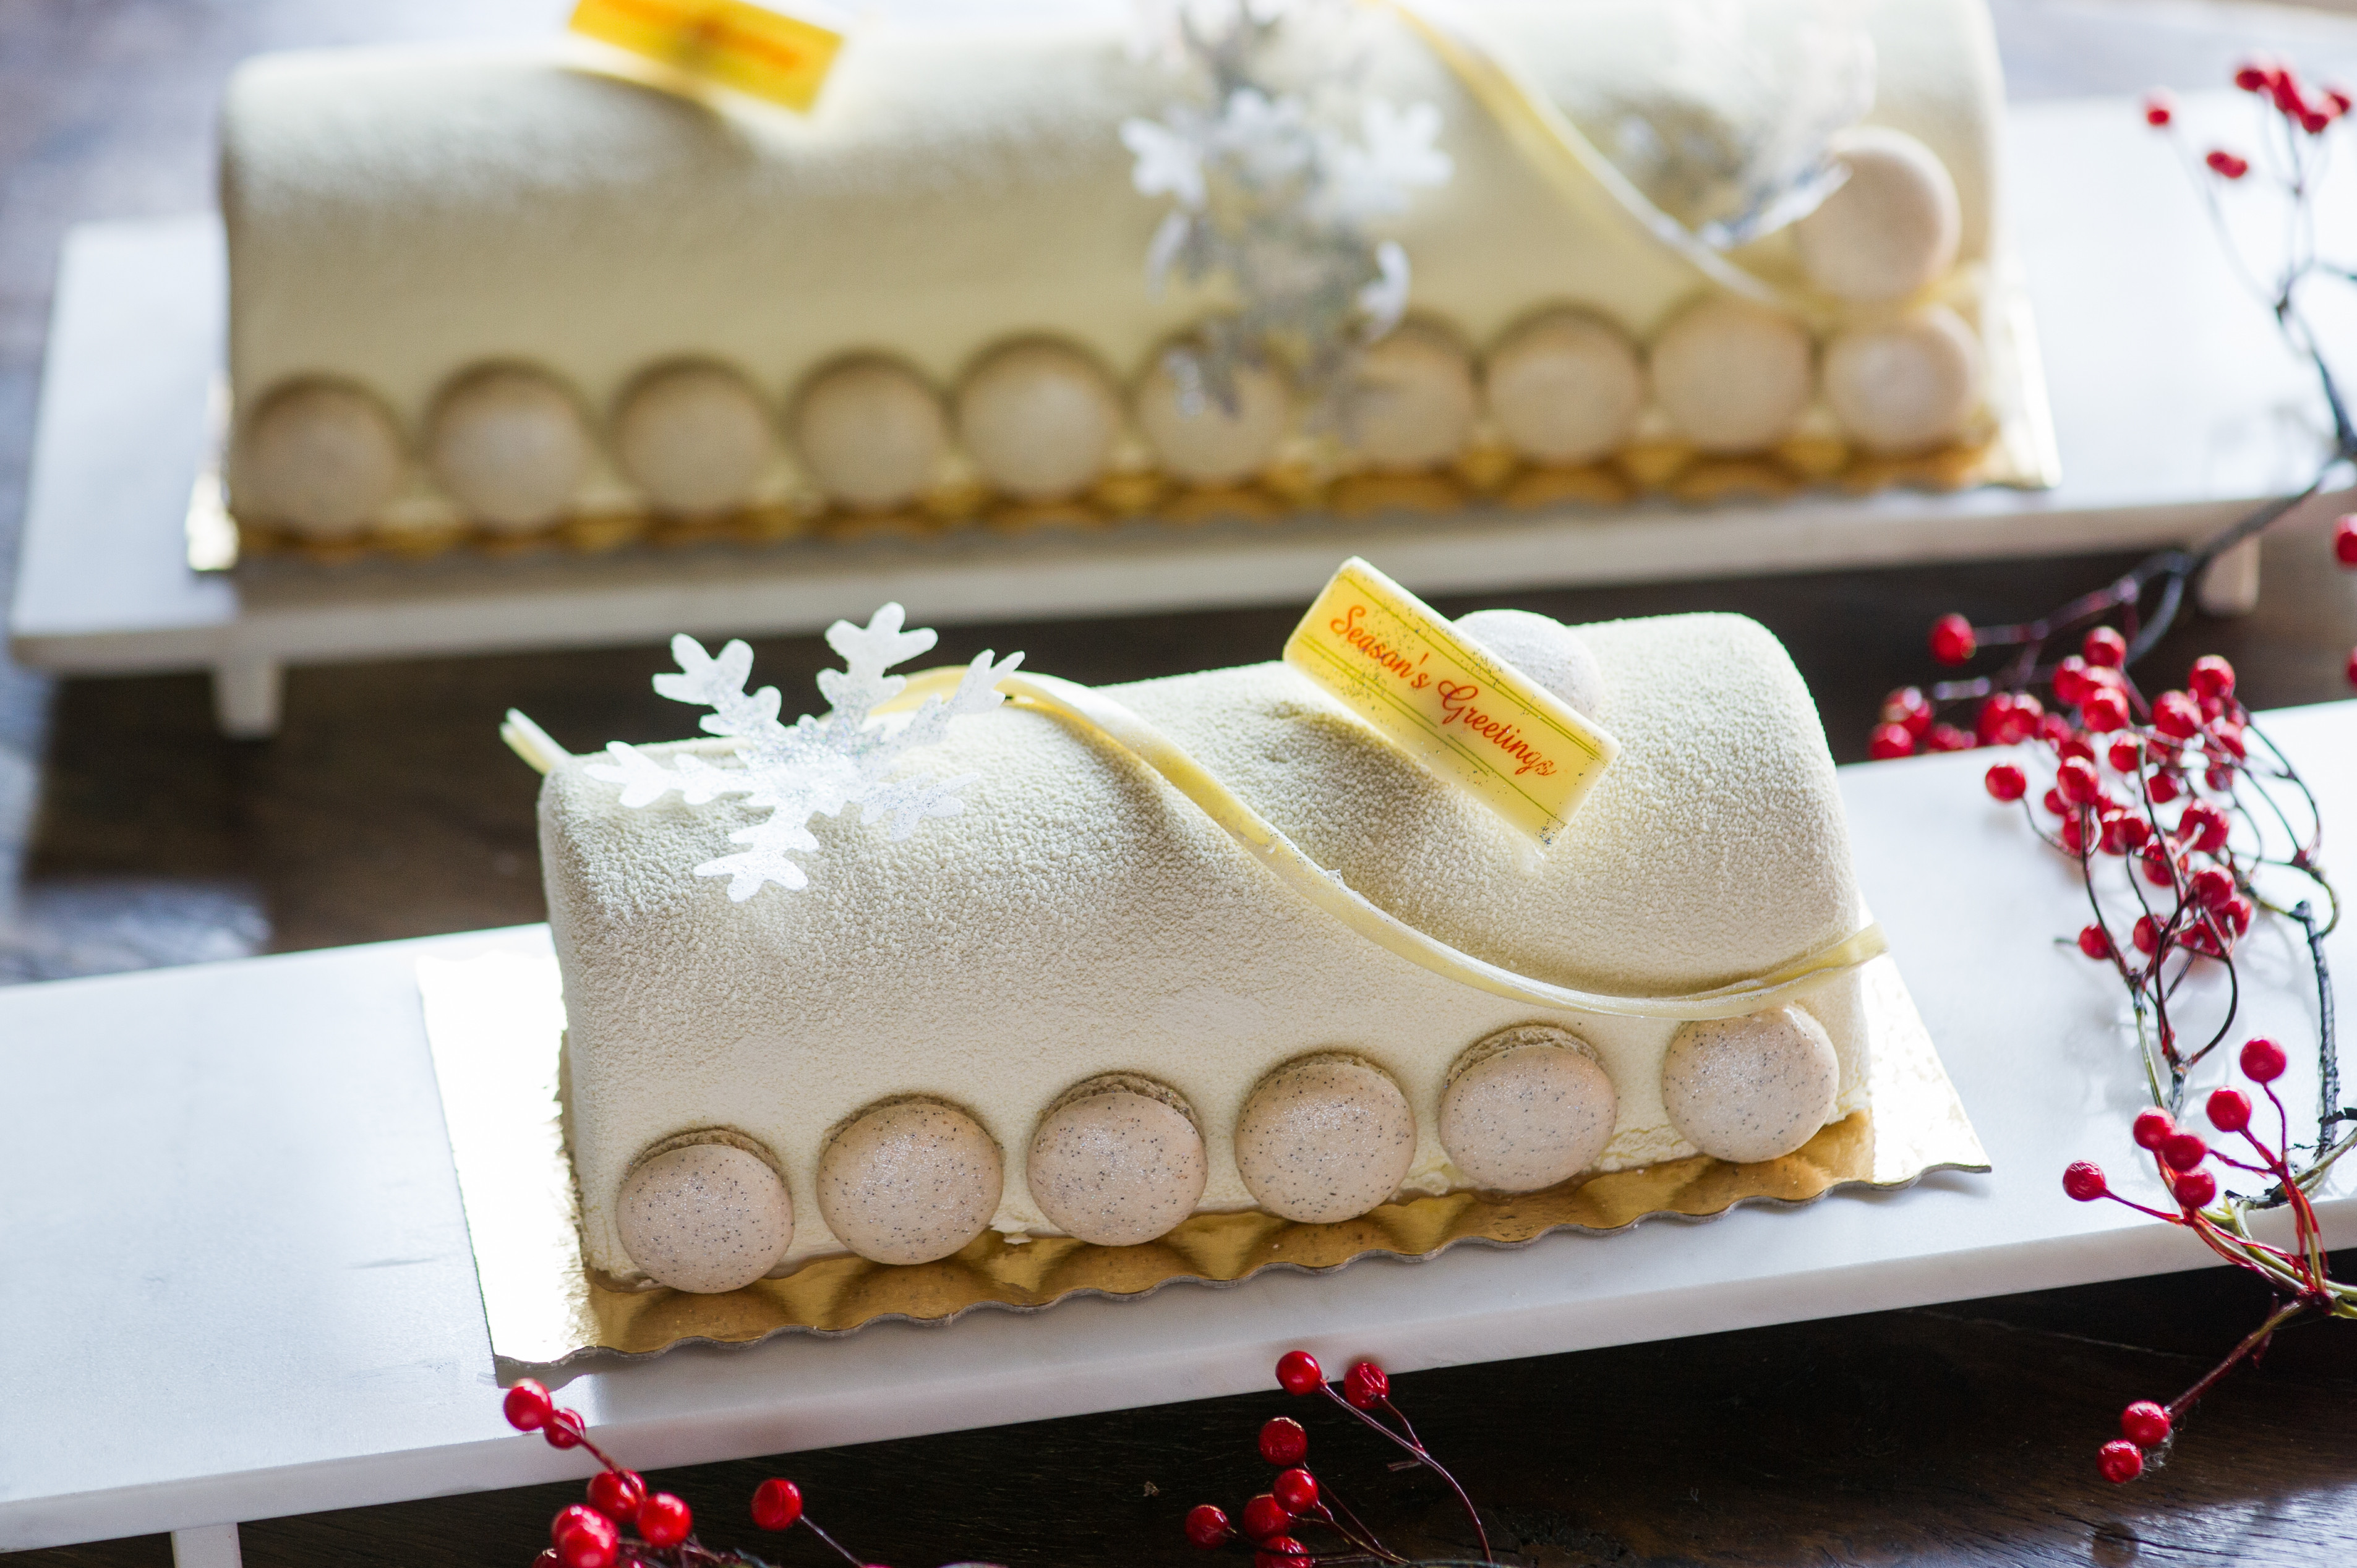 Cool Christmas Desserts  Best Unique Holiday Desserts in LA